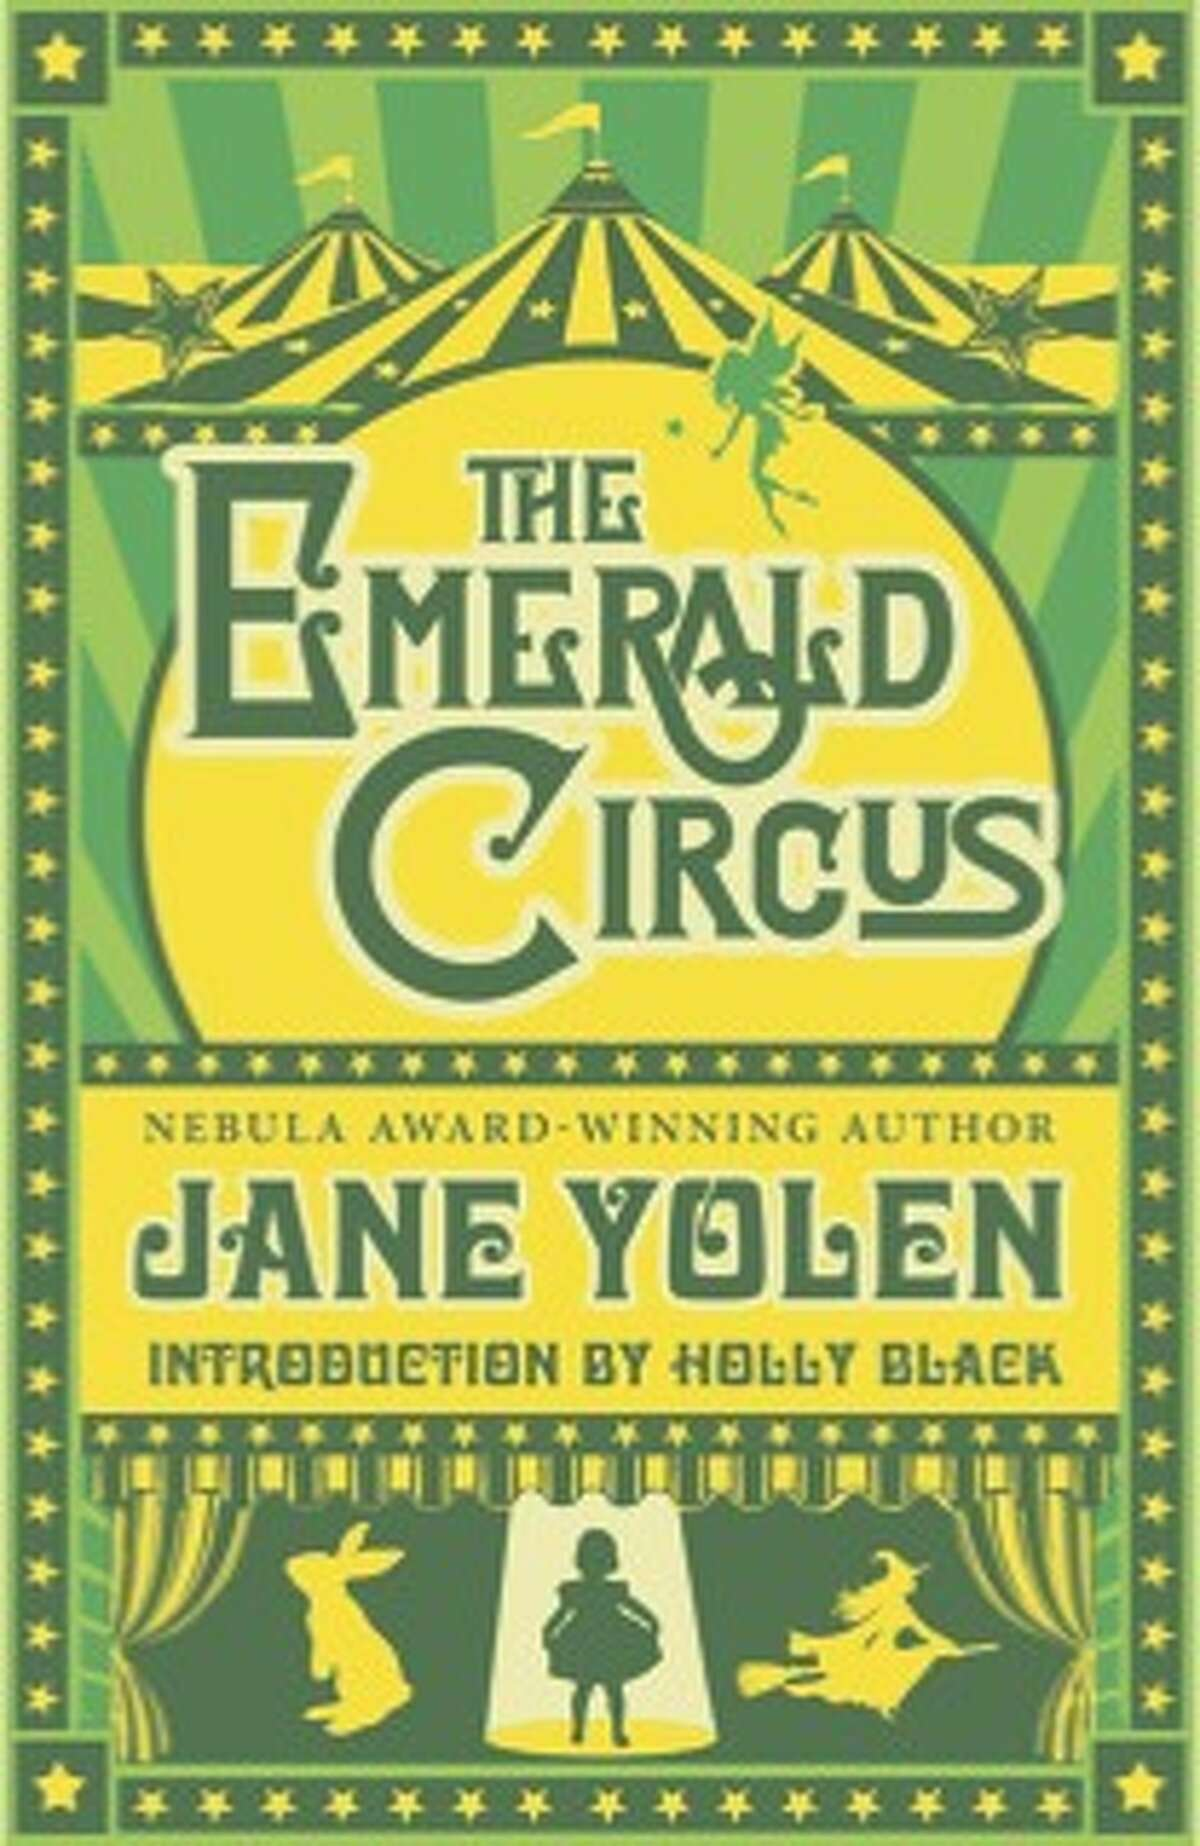 """""""The Emerald Circus,"""" a novel by Jane Yolen, who will appear at the Northshire Book Store in Saratoga Springs on Friday, April 27. (Provided)"""